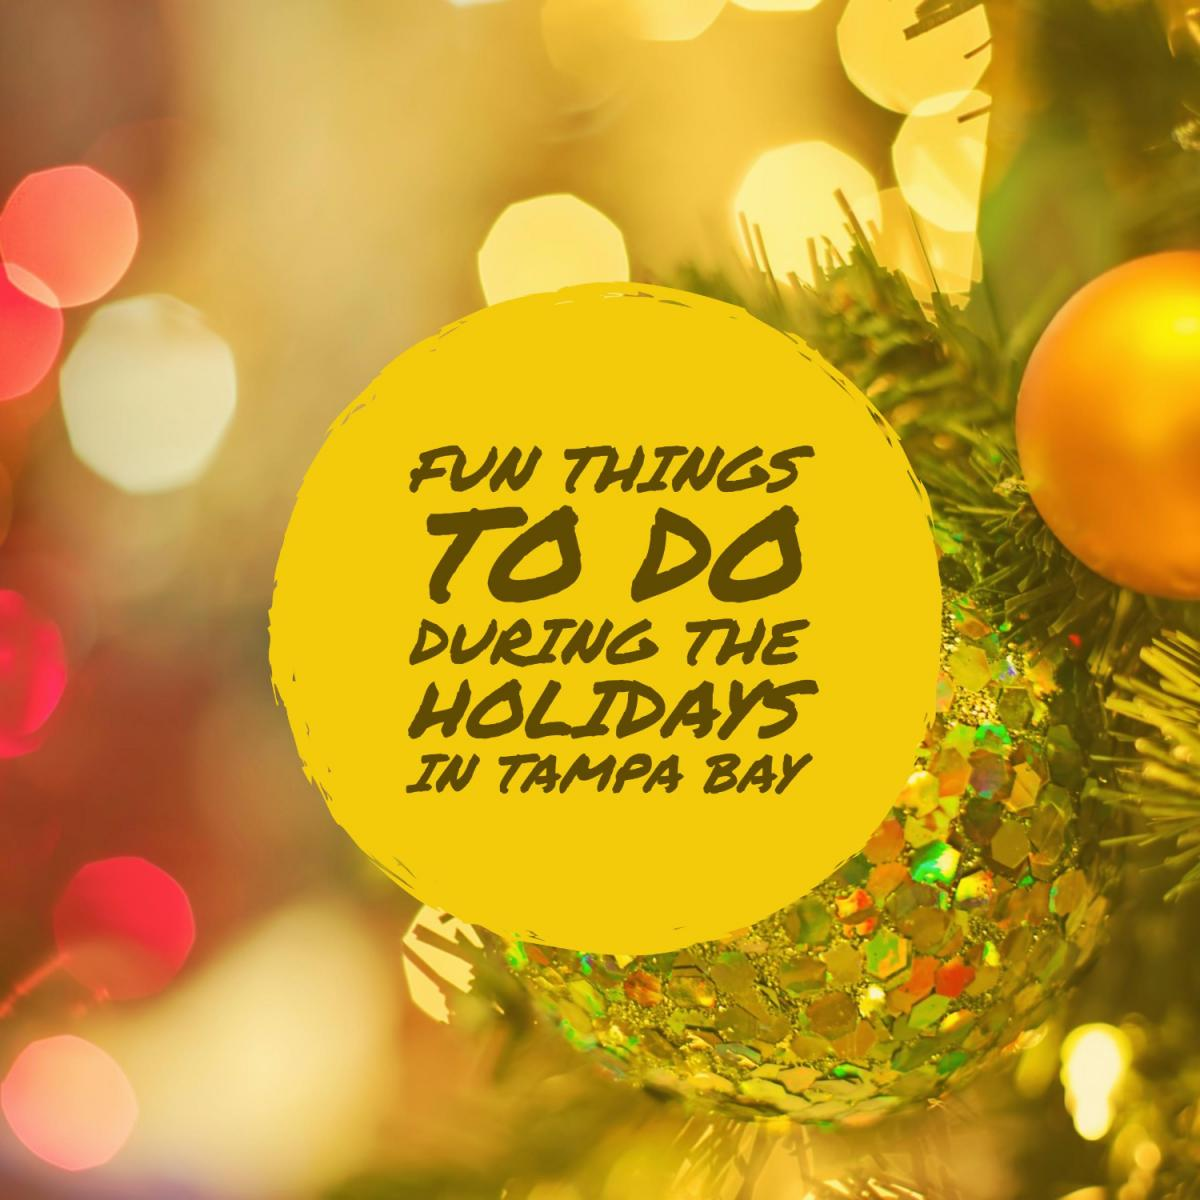 Fun Things to Do During the Holidays in Tampa Bay